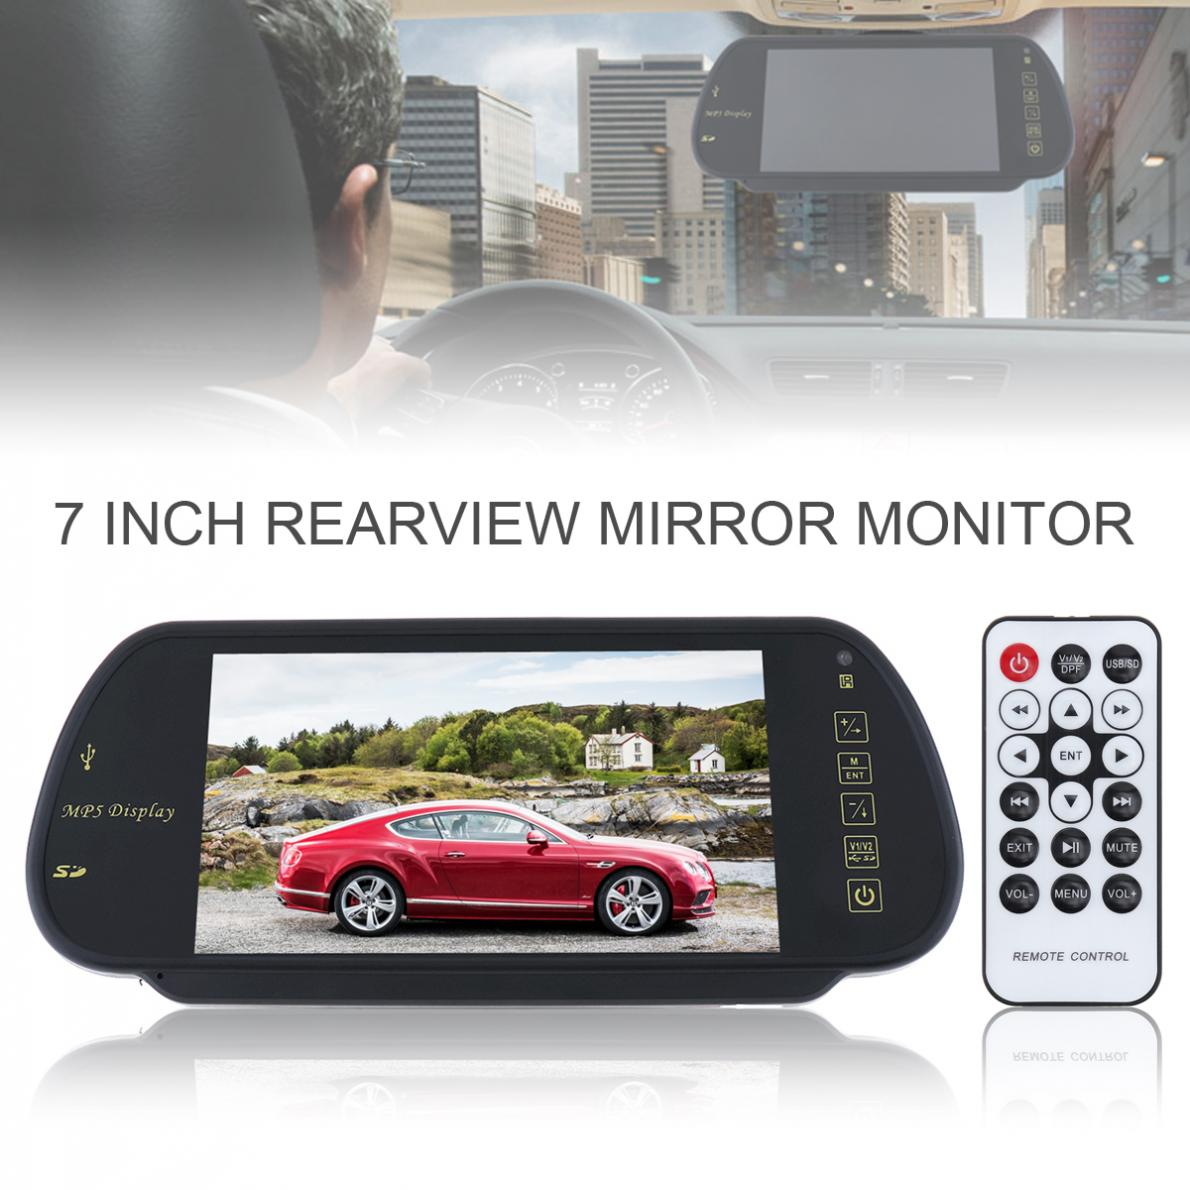 7 Inch DC 12V 100W TFT LCD Color Screen Car Rear View Mirror Monitor Popular Parking Assistance Support SD / USB